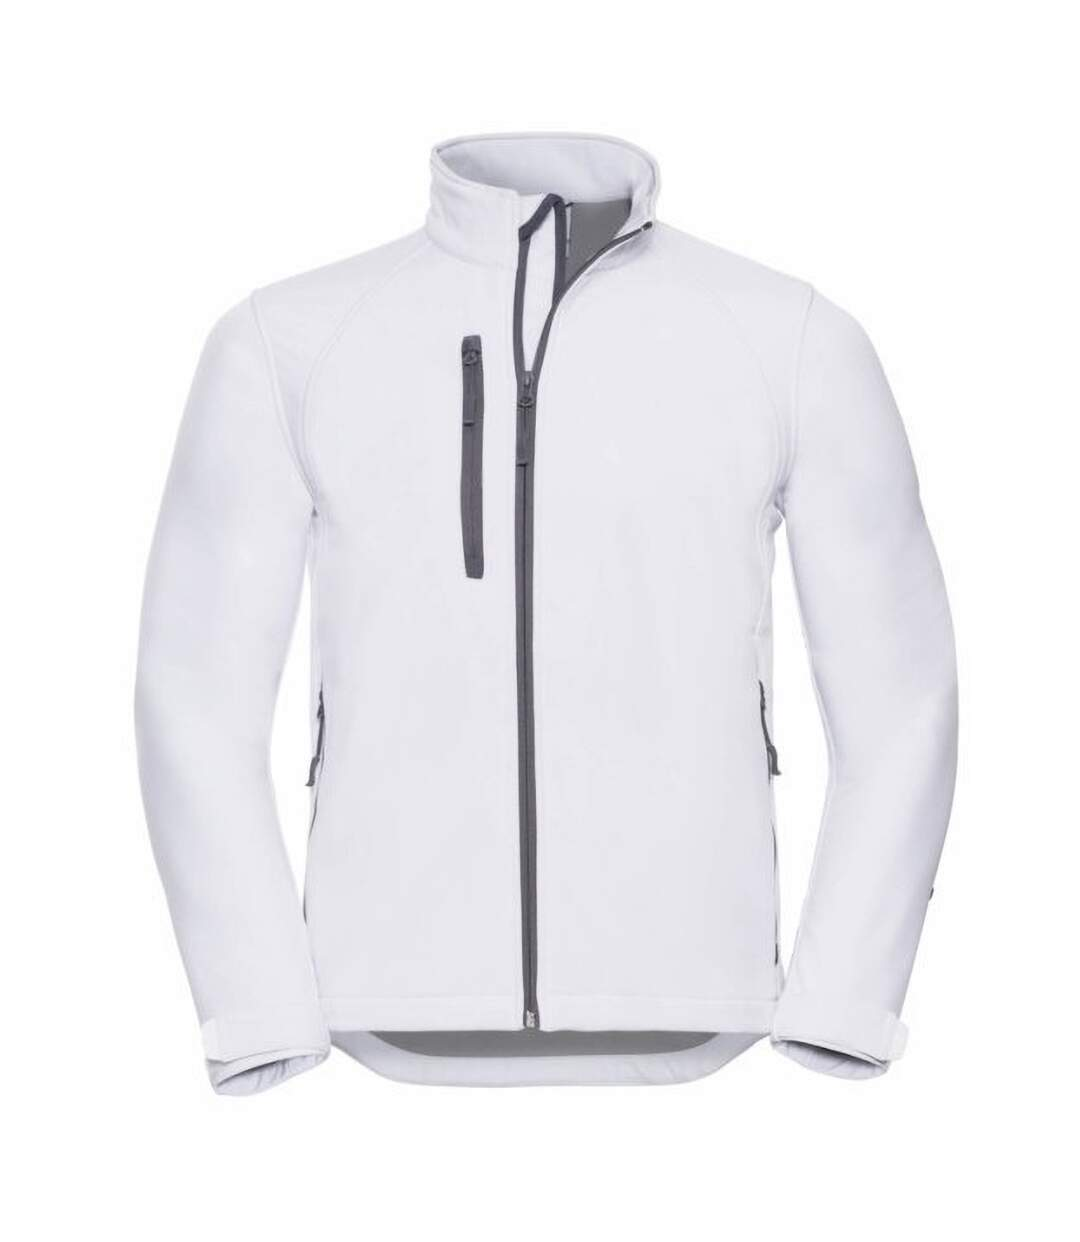 Russell Mens Water Resistant & Windproof Softshell Jacket (White) - UTBC562